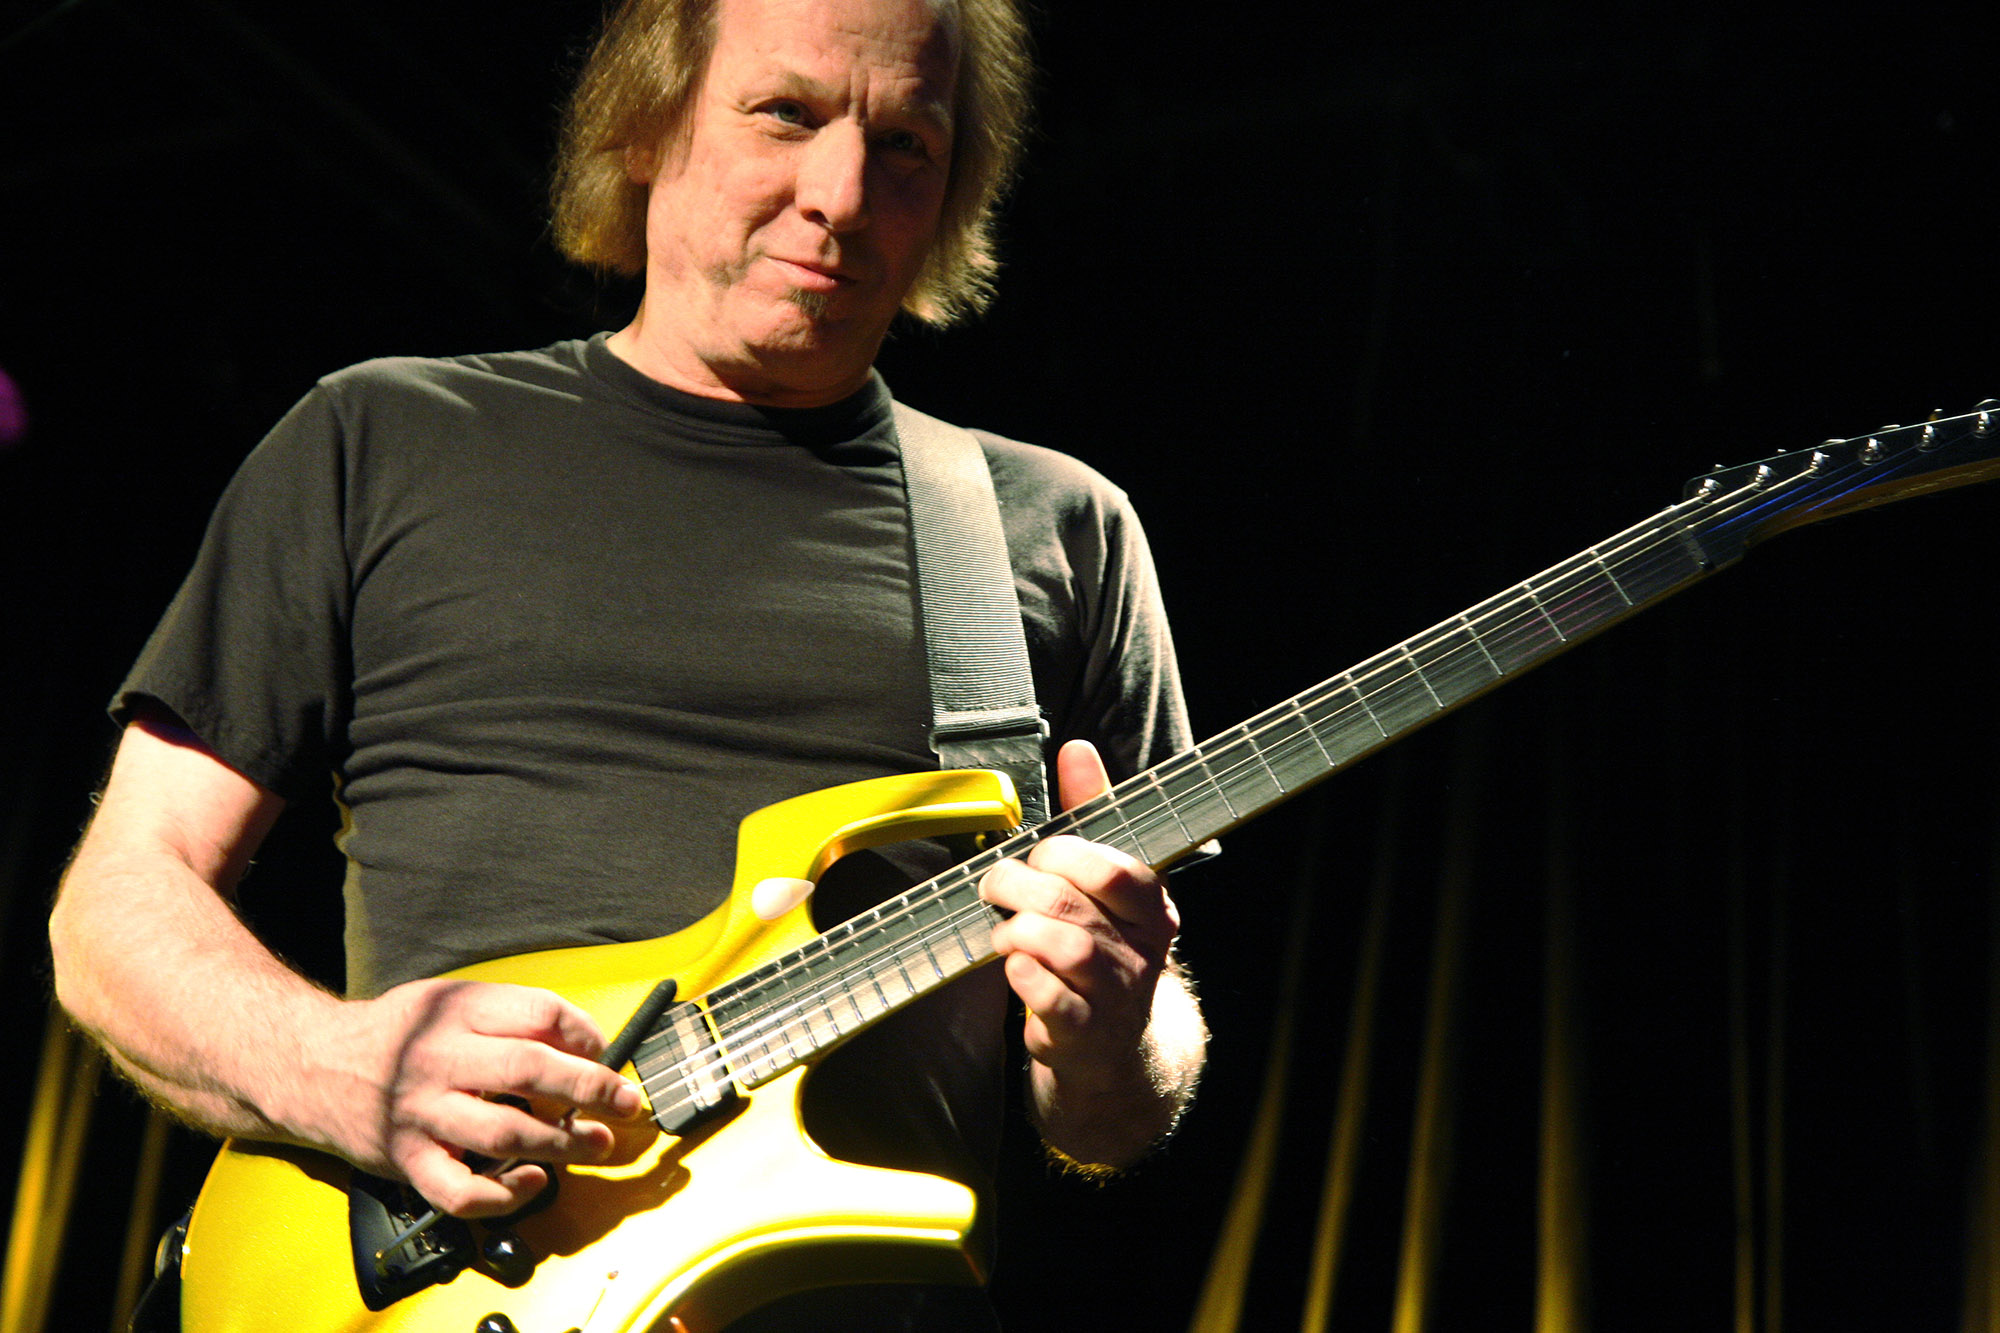 Adrian Belew, guitar legend, will perform and give master class at the ACM@UCO Performance Lab on Nov. 20.  Tickets are now available.